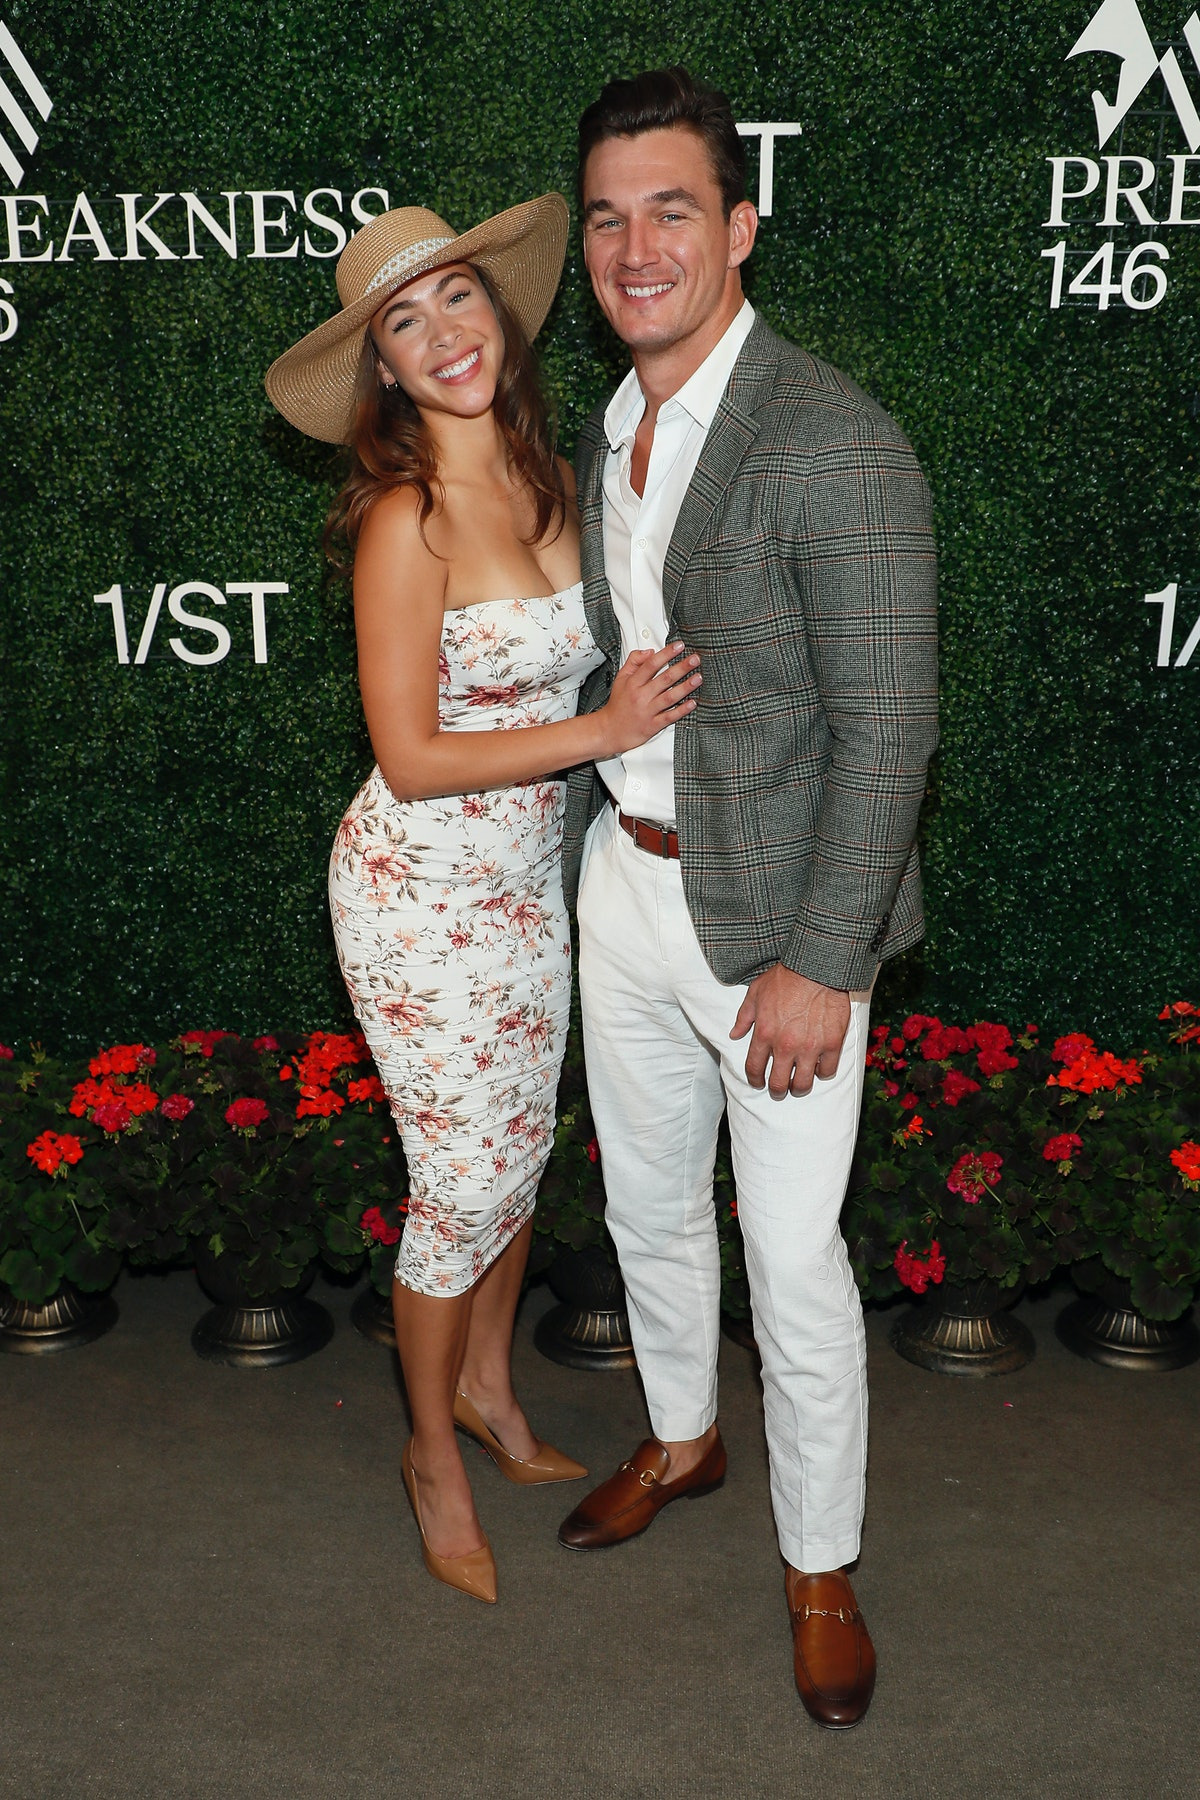 Camila Kendra and Tyler Cameron attend Preakness 146.